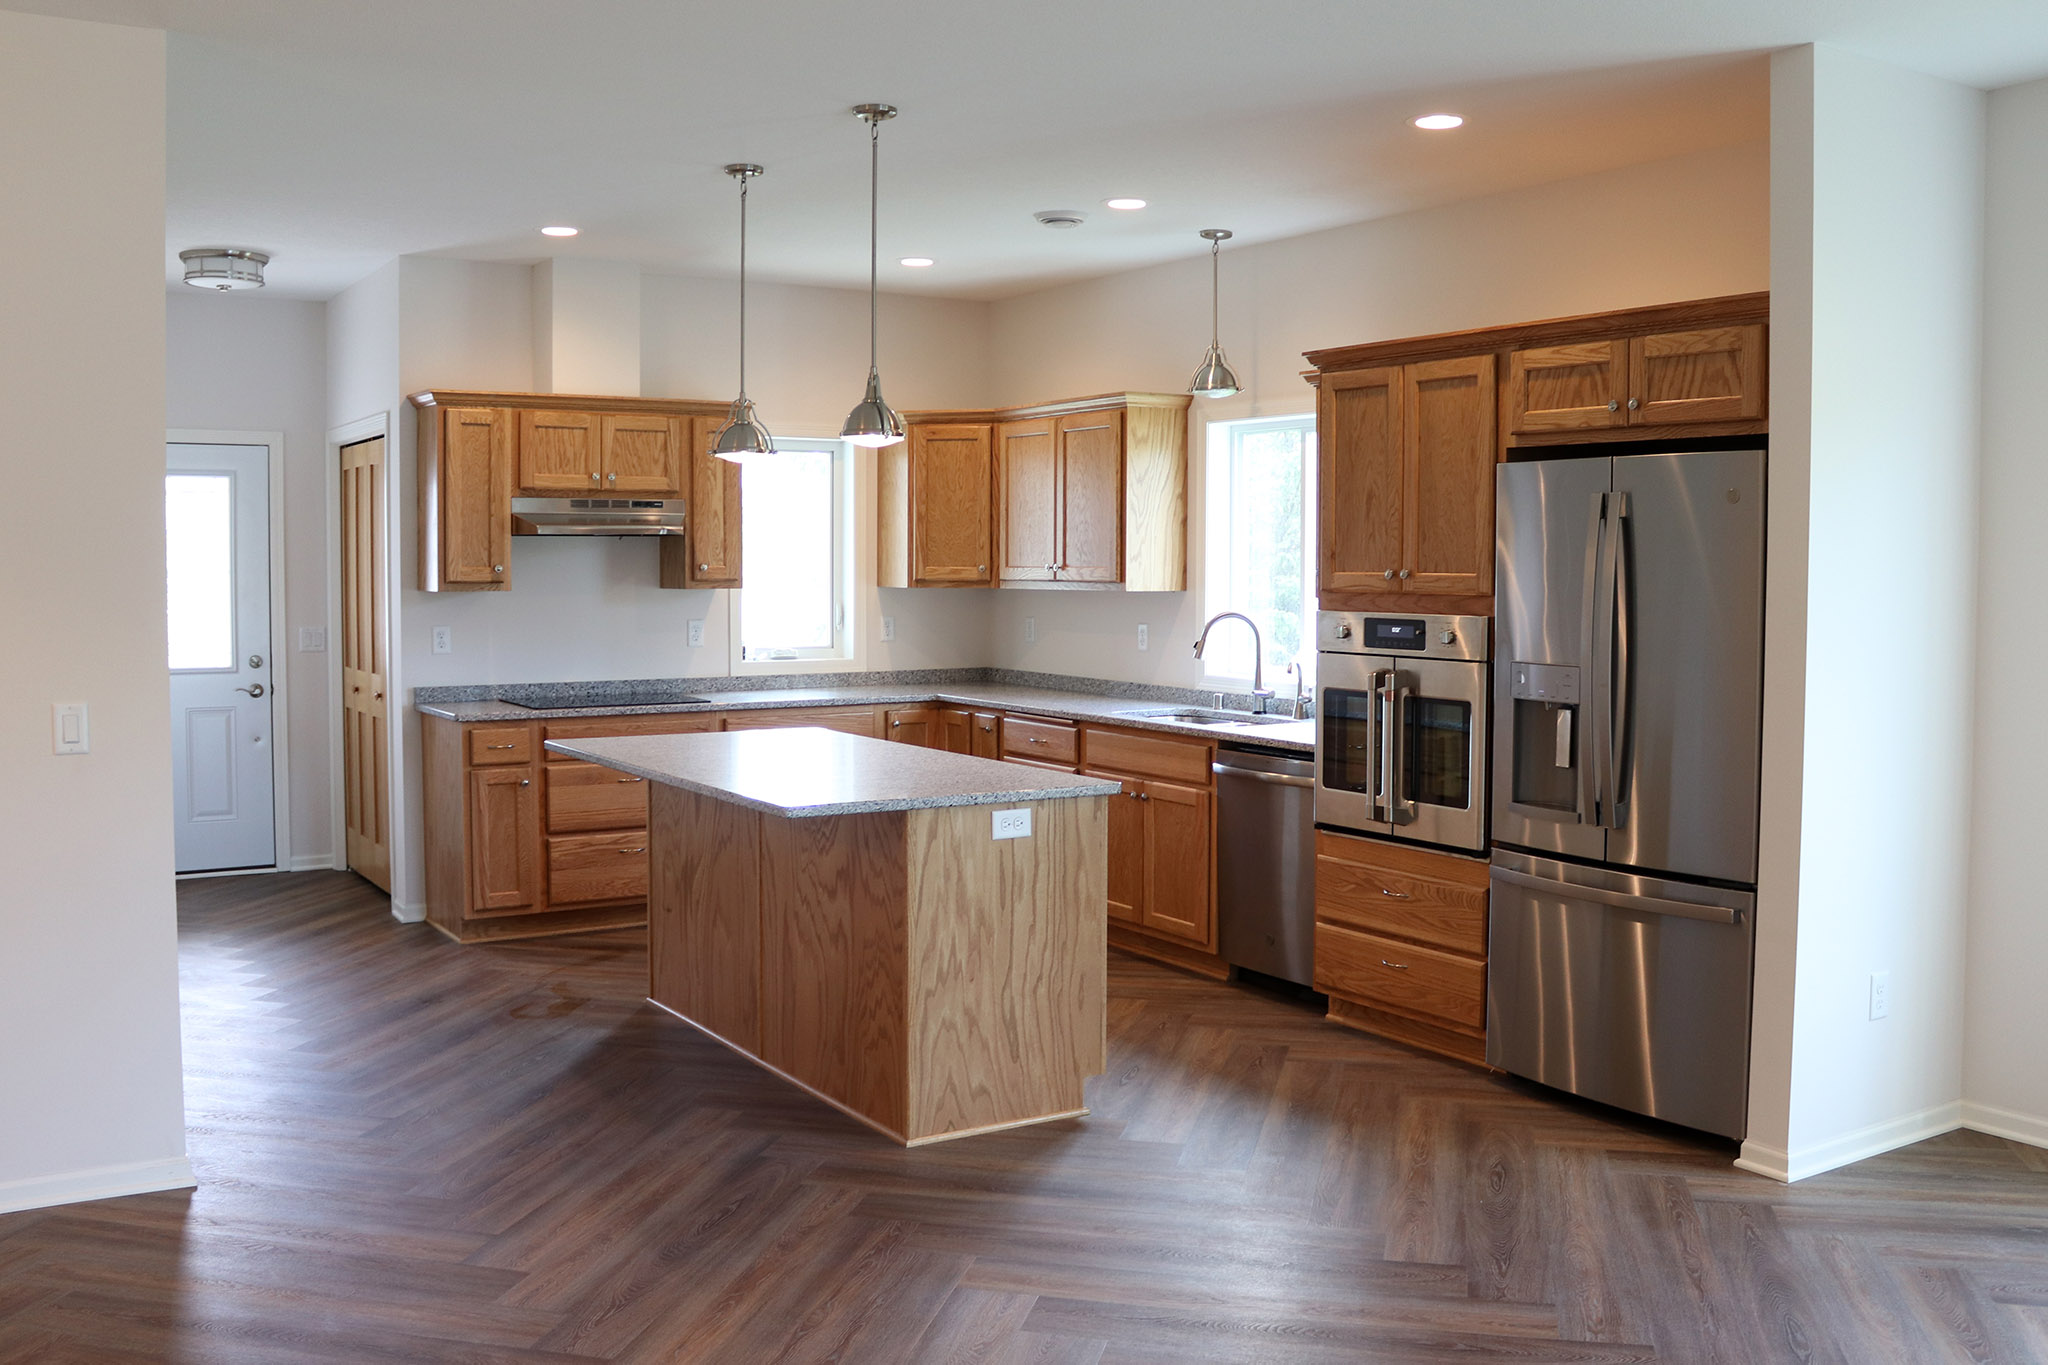 Kitchen with wood cabinets, stainless appliances and herringbone wood floor